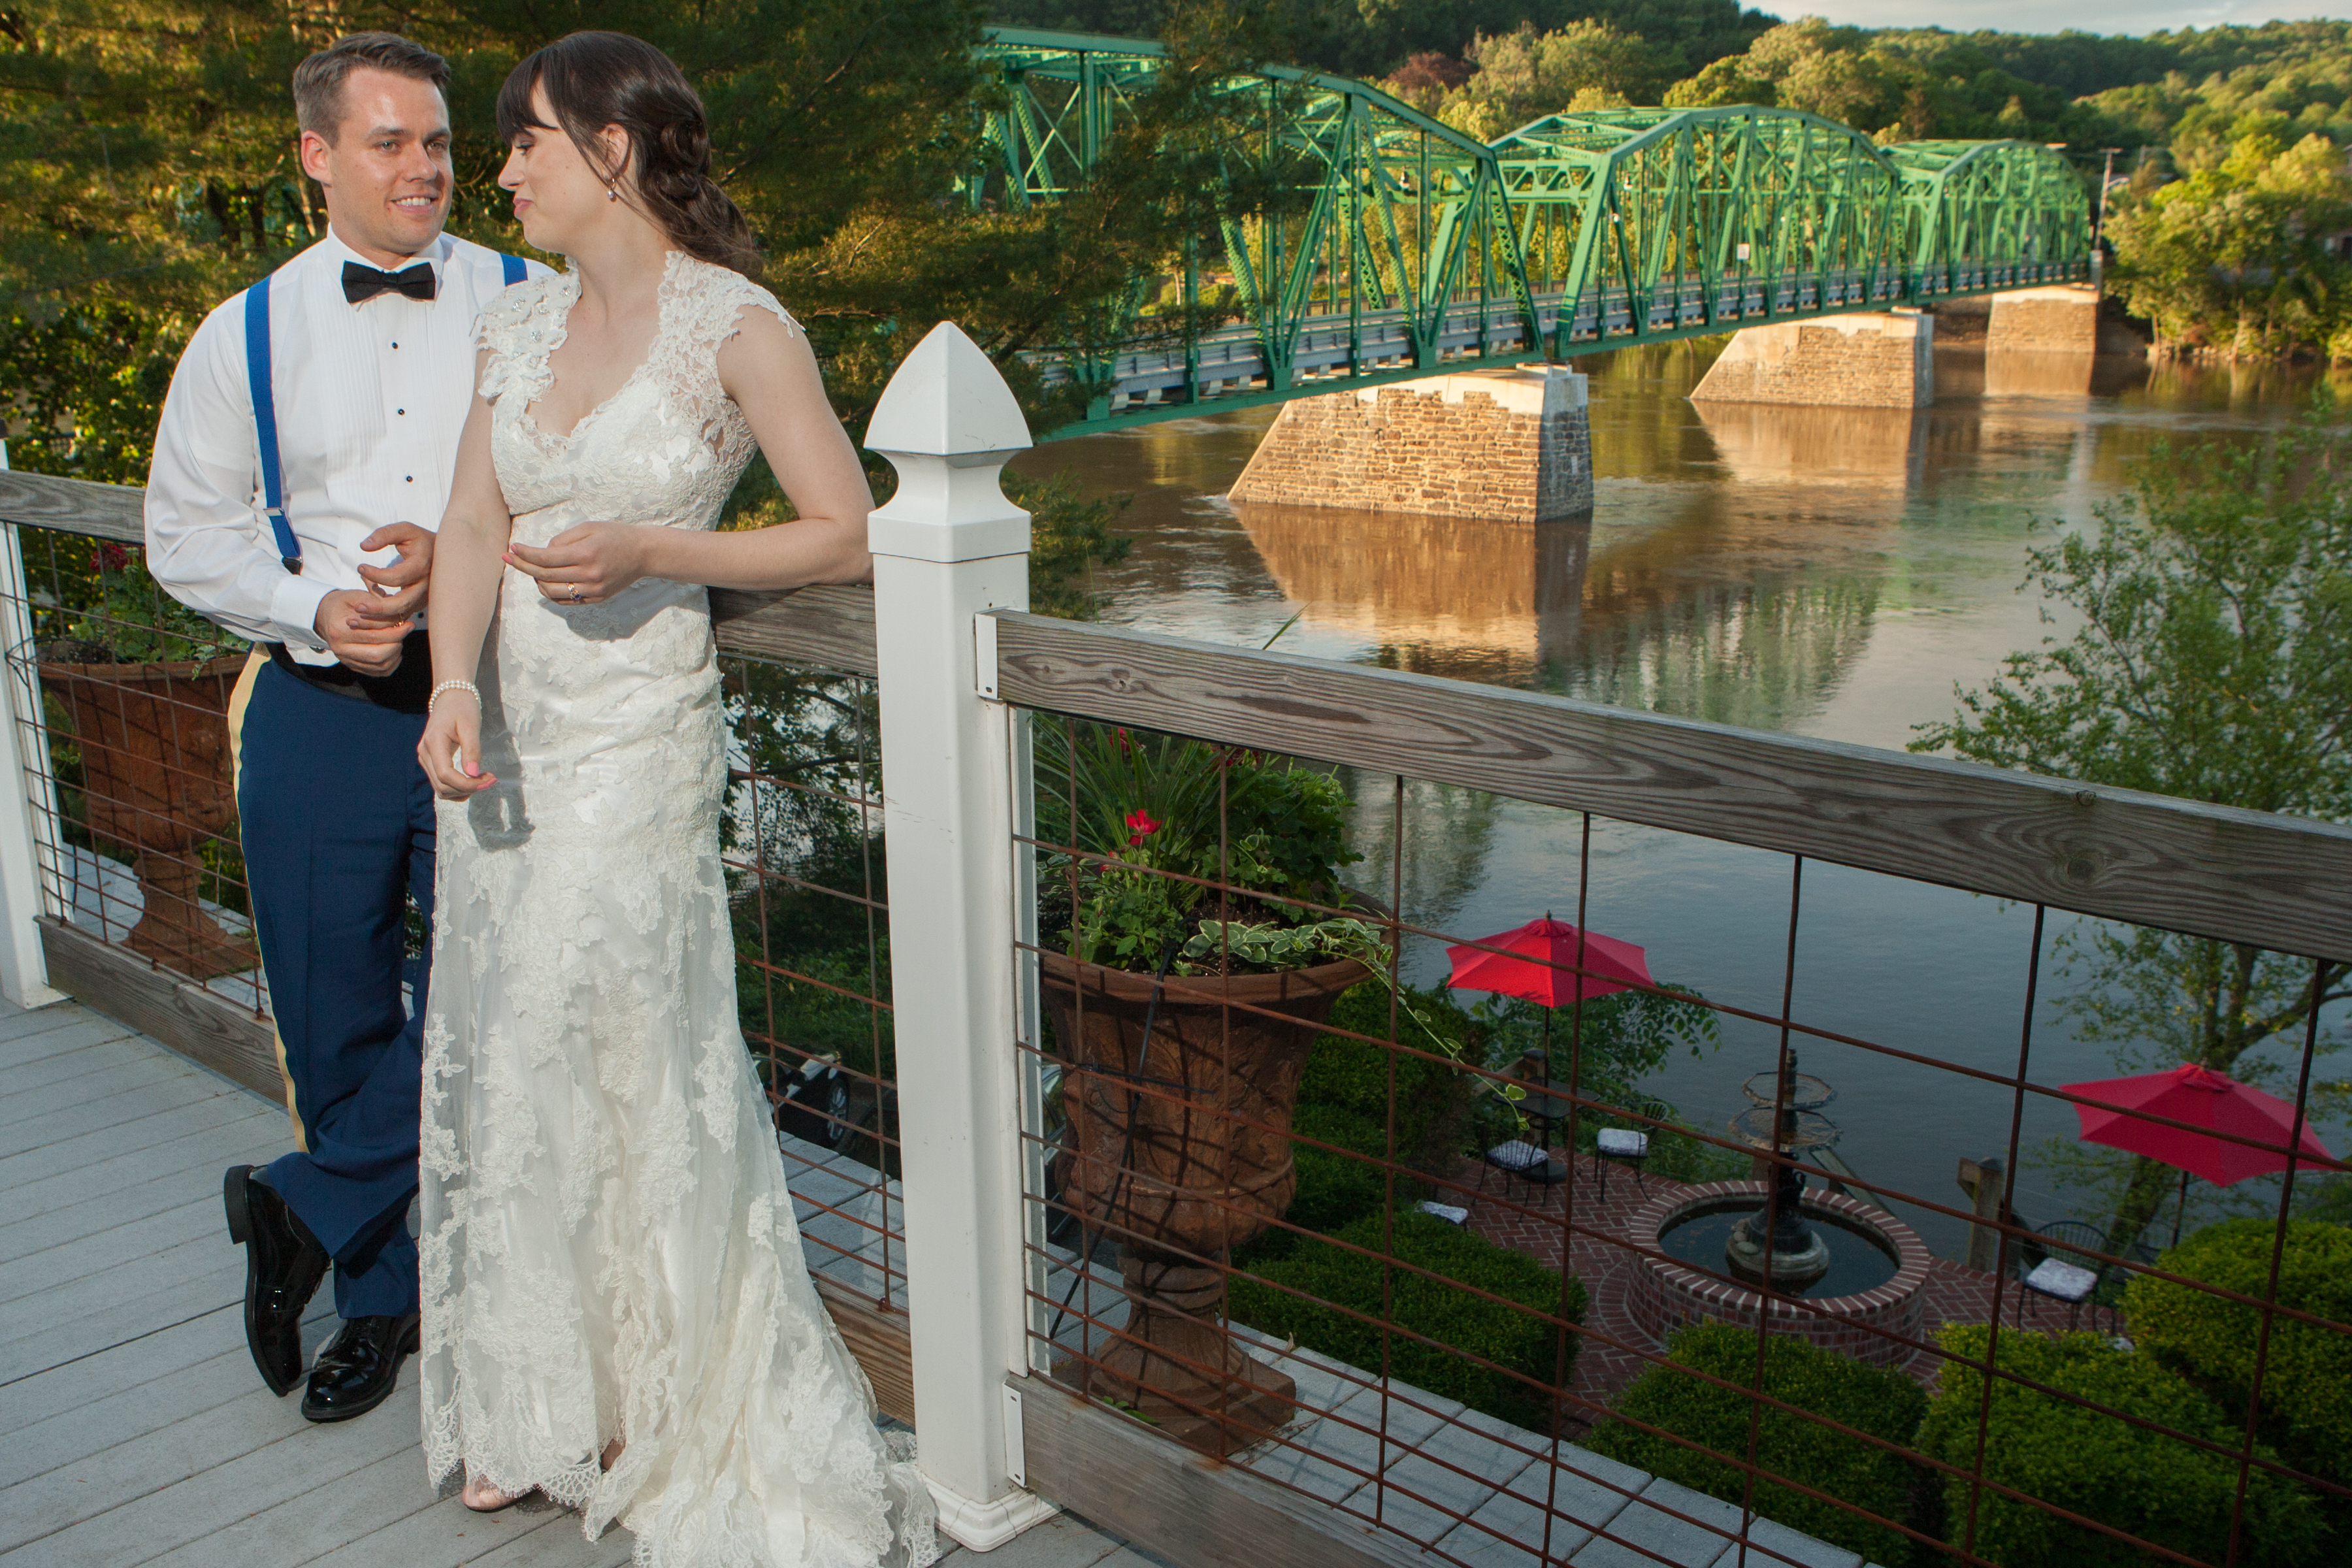 New Hope Wedding Venues Magical Wedding On The Delaware River